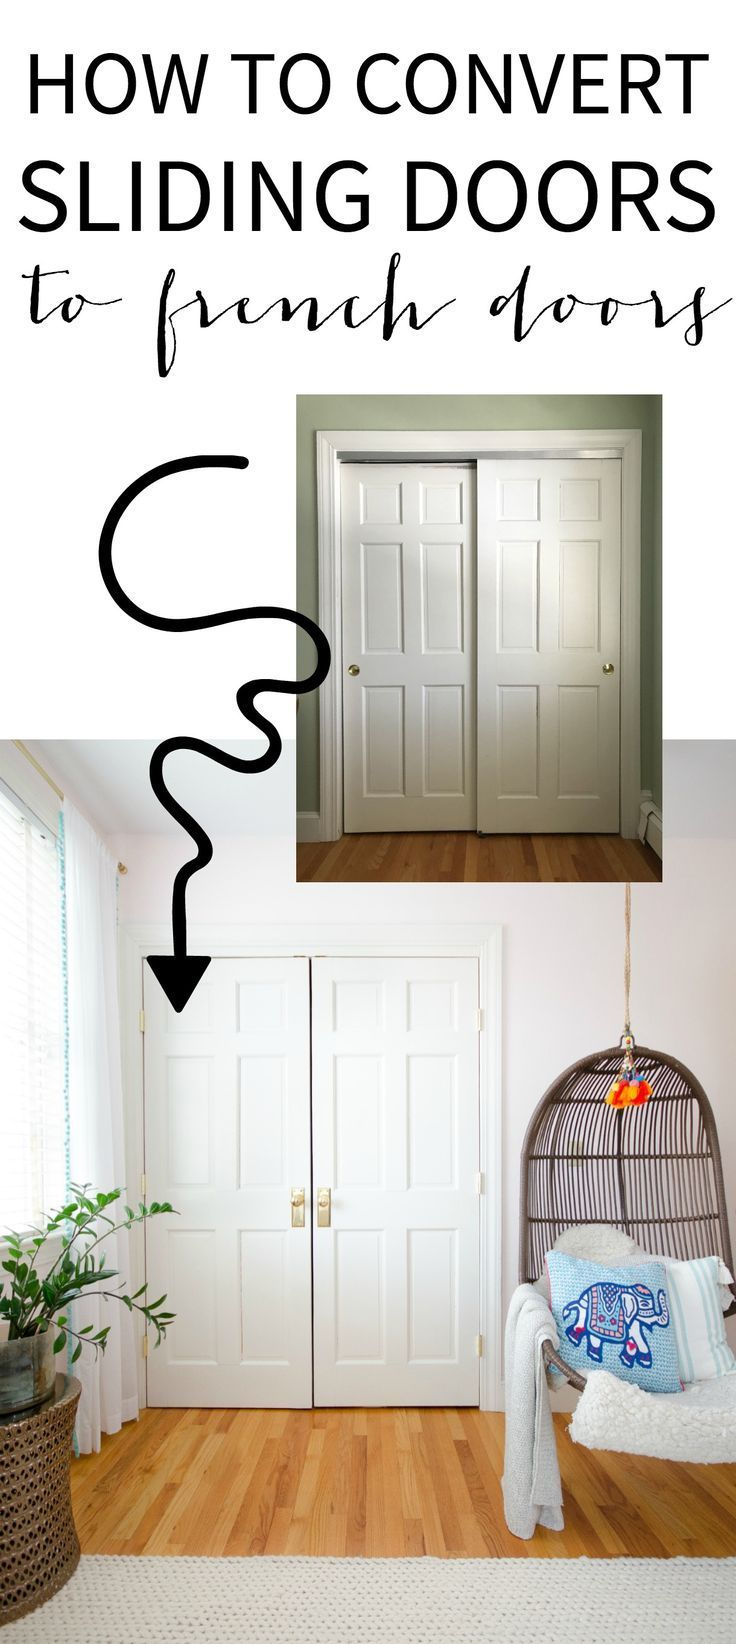 How To Convert Sliding Doors To Hinged Doors Step By Step Tutorial That Teaches You How To Take You In 2020 Diy Closet Doors Sliding Closet Doors Bedroom Closet Doors